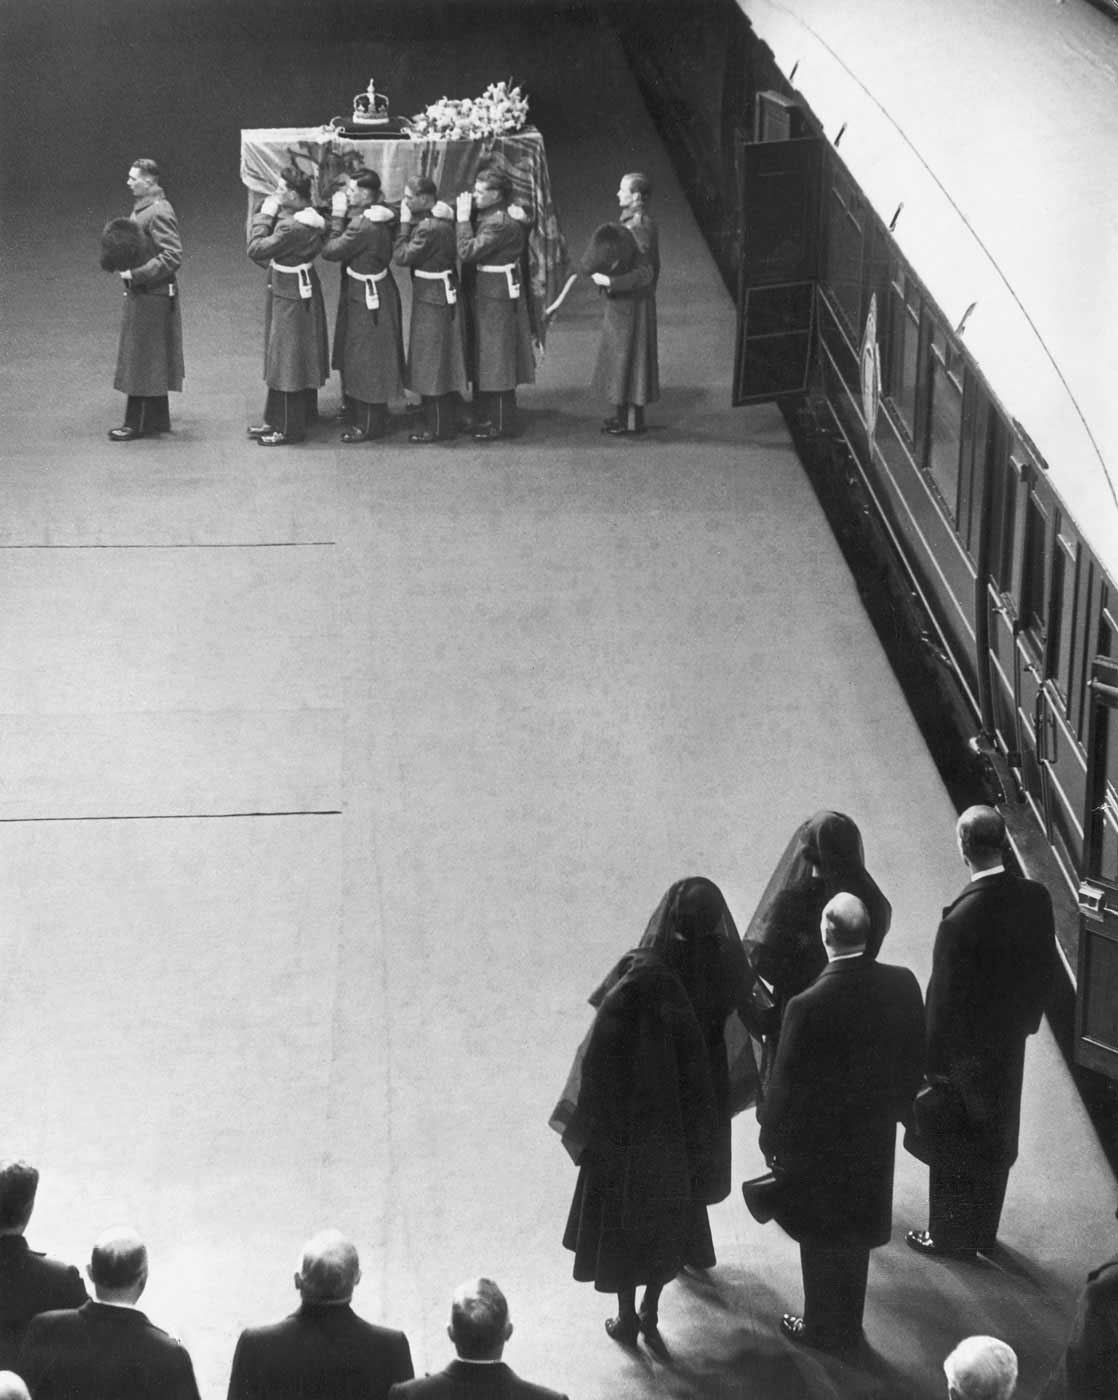 Princess Elizabeth, along with her mother, sister and husband, watches as her father's coffin is lifted from a train before heading to Westminster on Feb. 11, 1952. When King George VI's health started to decline the previous year, Elizabeth began standing in his place for royal duties. She and Prince Philip were abroad in Kenya on one such mission when word came that the King had passed away on Feb. 6. Elizabeth was immediately proclaimed the Queen.